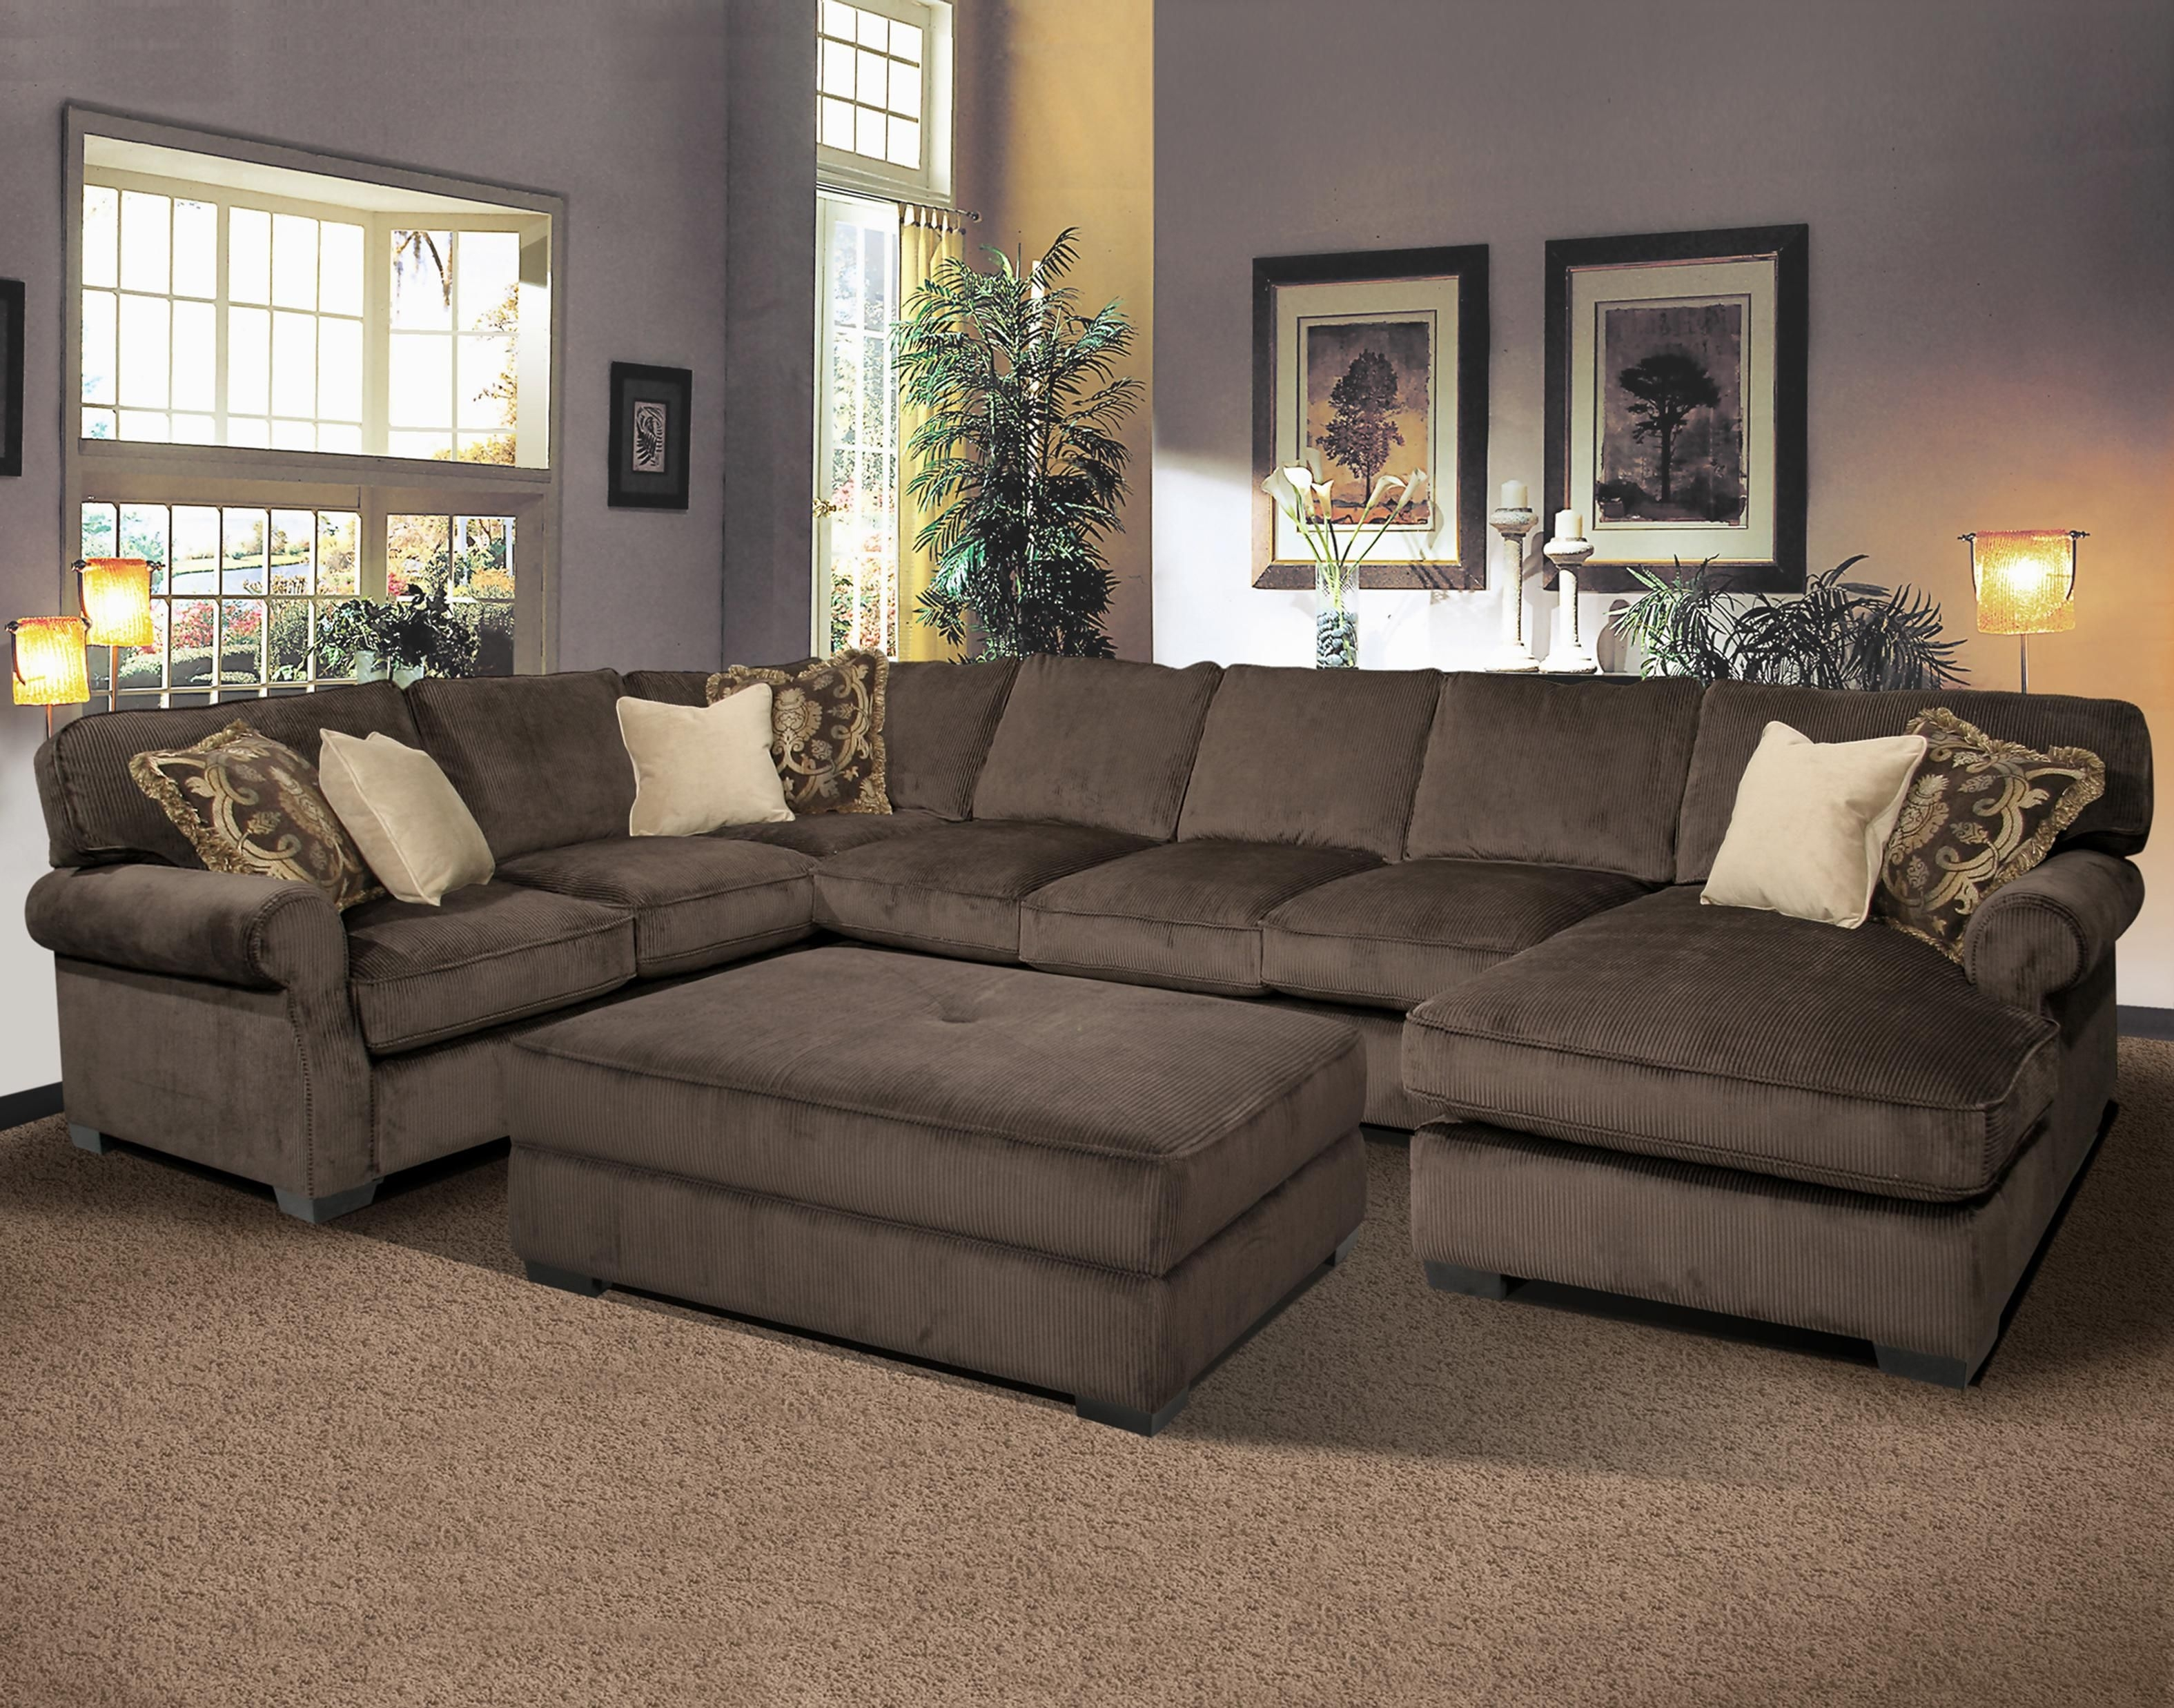 Big And Comfy Grand Island Large, 7 Seat Sectional Sofa With Right throughout Gordon 3 Piece Sectionals With Raf Chaise (Image 7 of 30)